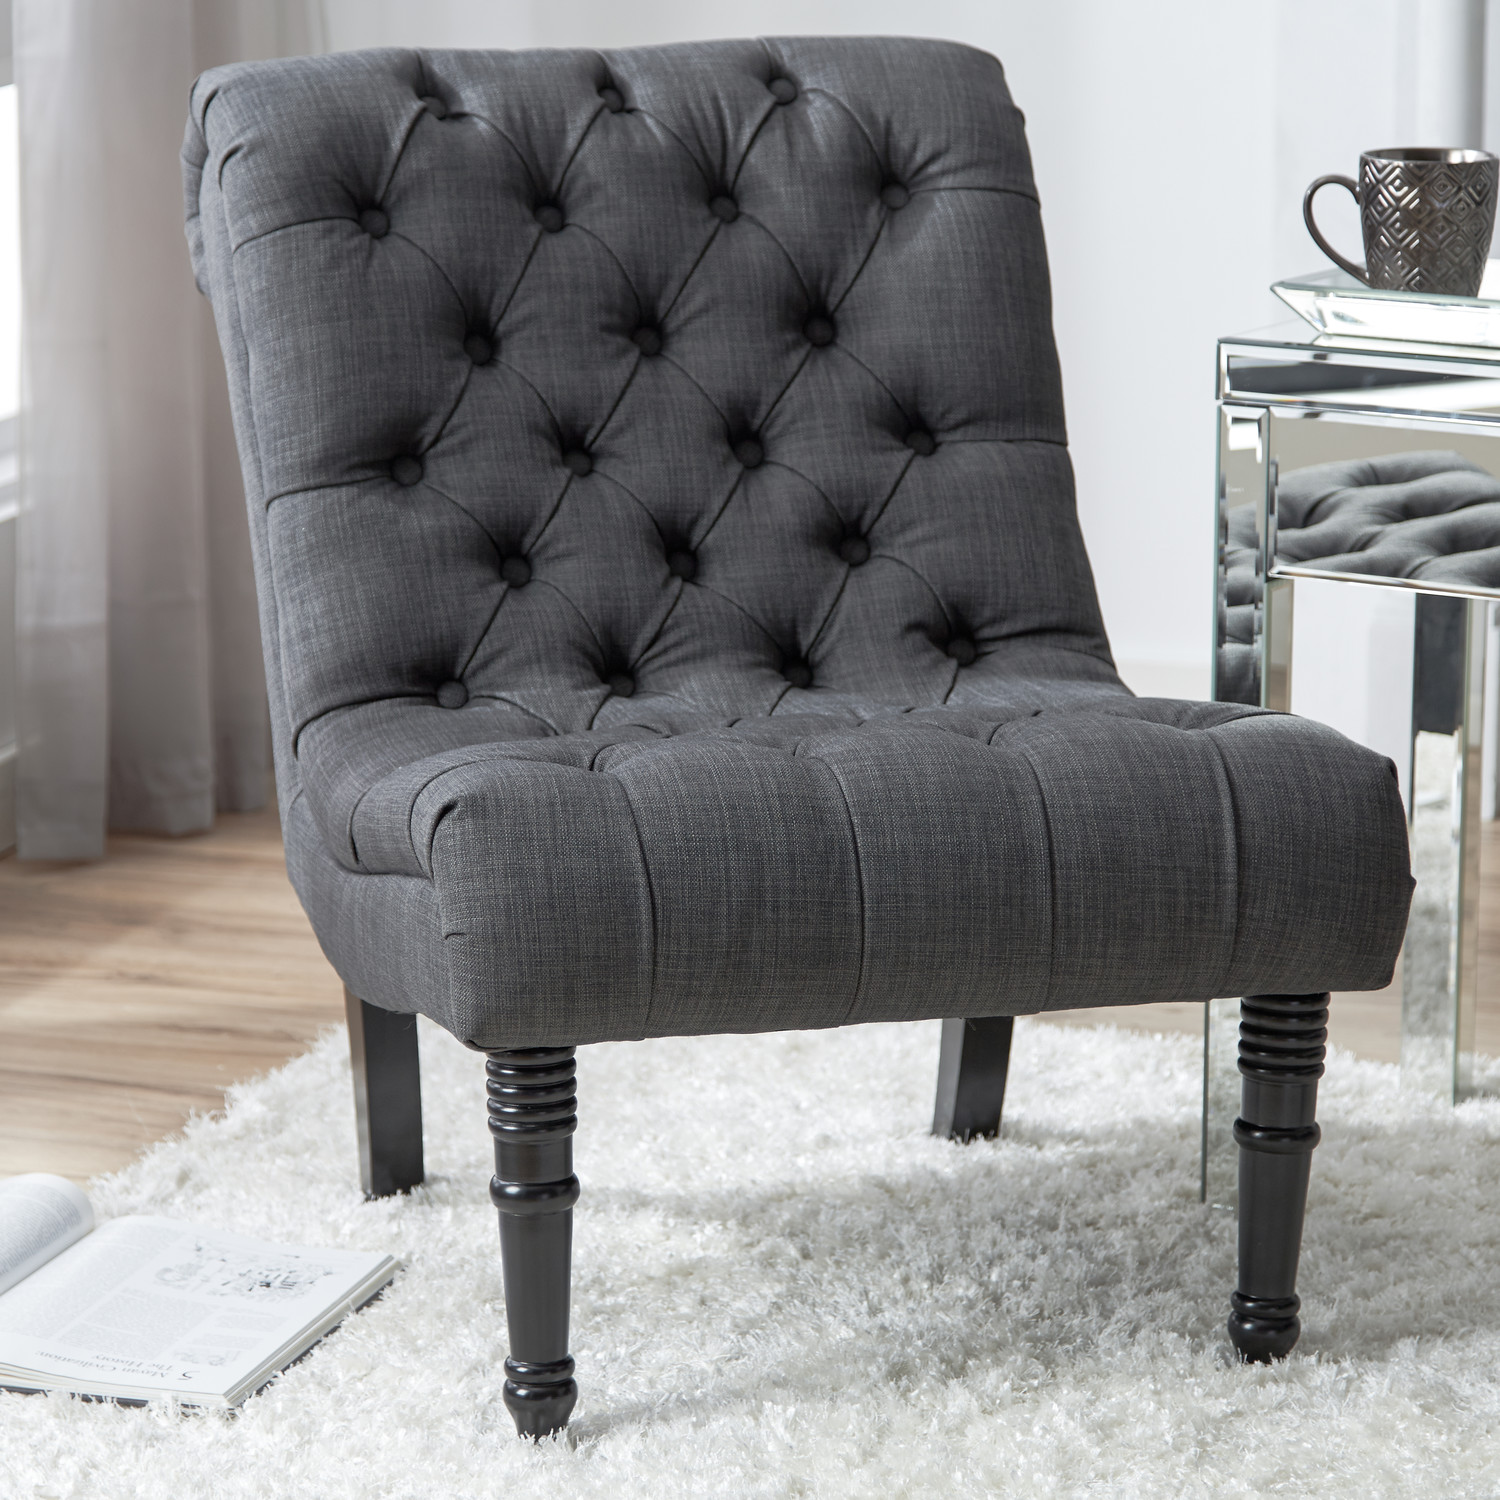 funiture upholsterd accent chairs with arm and high back chair also gray upholstered glossy short black carved legs over white hairy rug laminate floor acrylic table between two